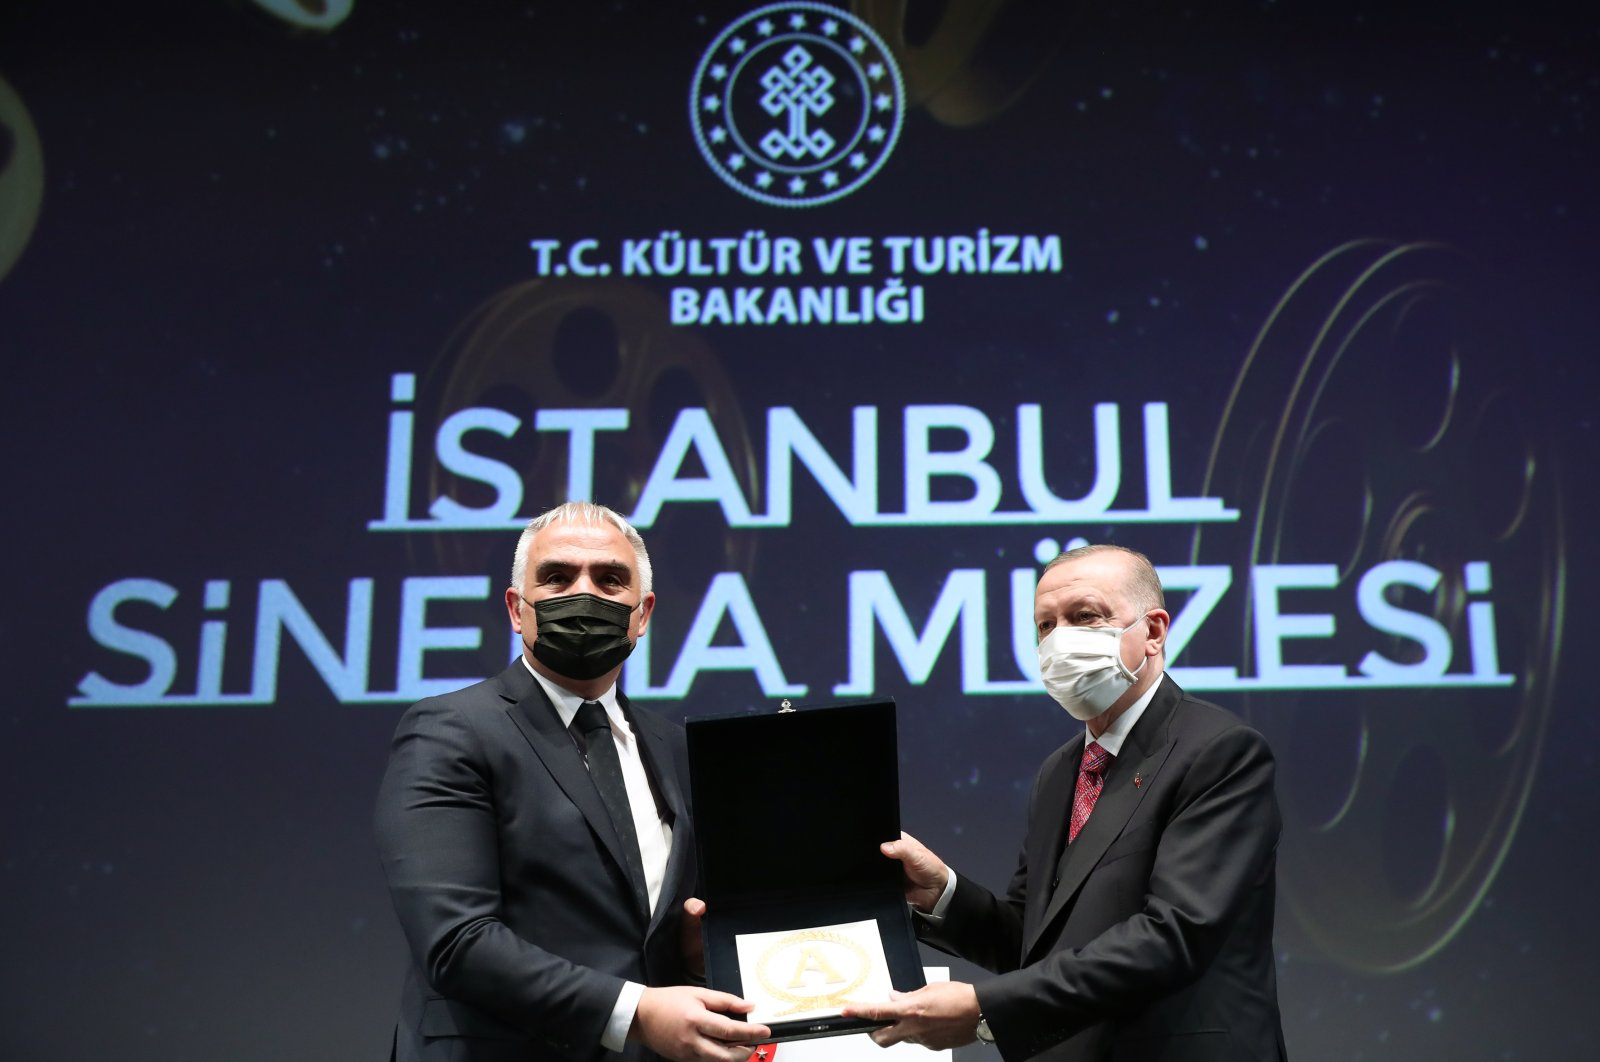 Culture and Tourism Minister Mehmet Nuri Ersoy (L) along with President Recep Tayyip Erdoğan during the opening of the Atlas Theatre and İstanbul Cinema Museum, Istanbul, Turkey, Feb. 26, 2021. (AA Photo)